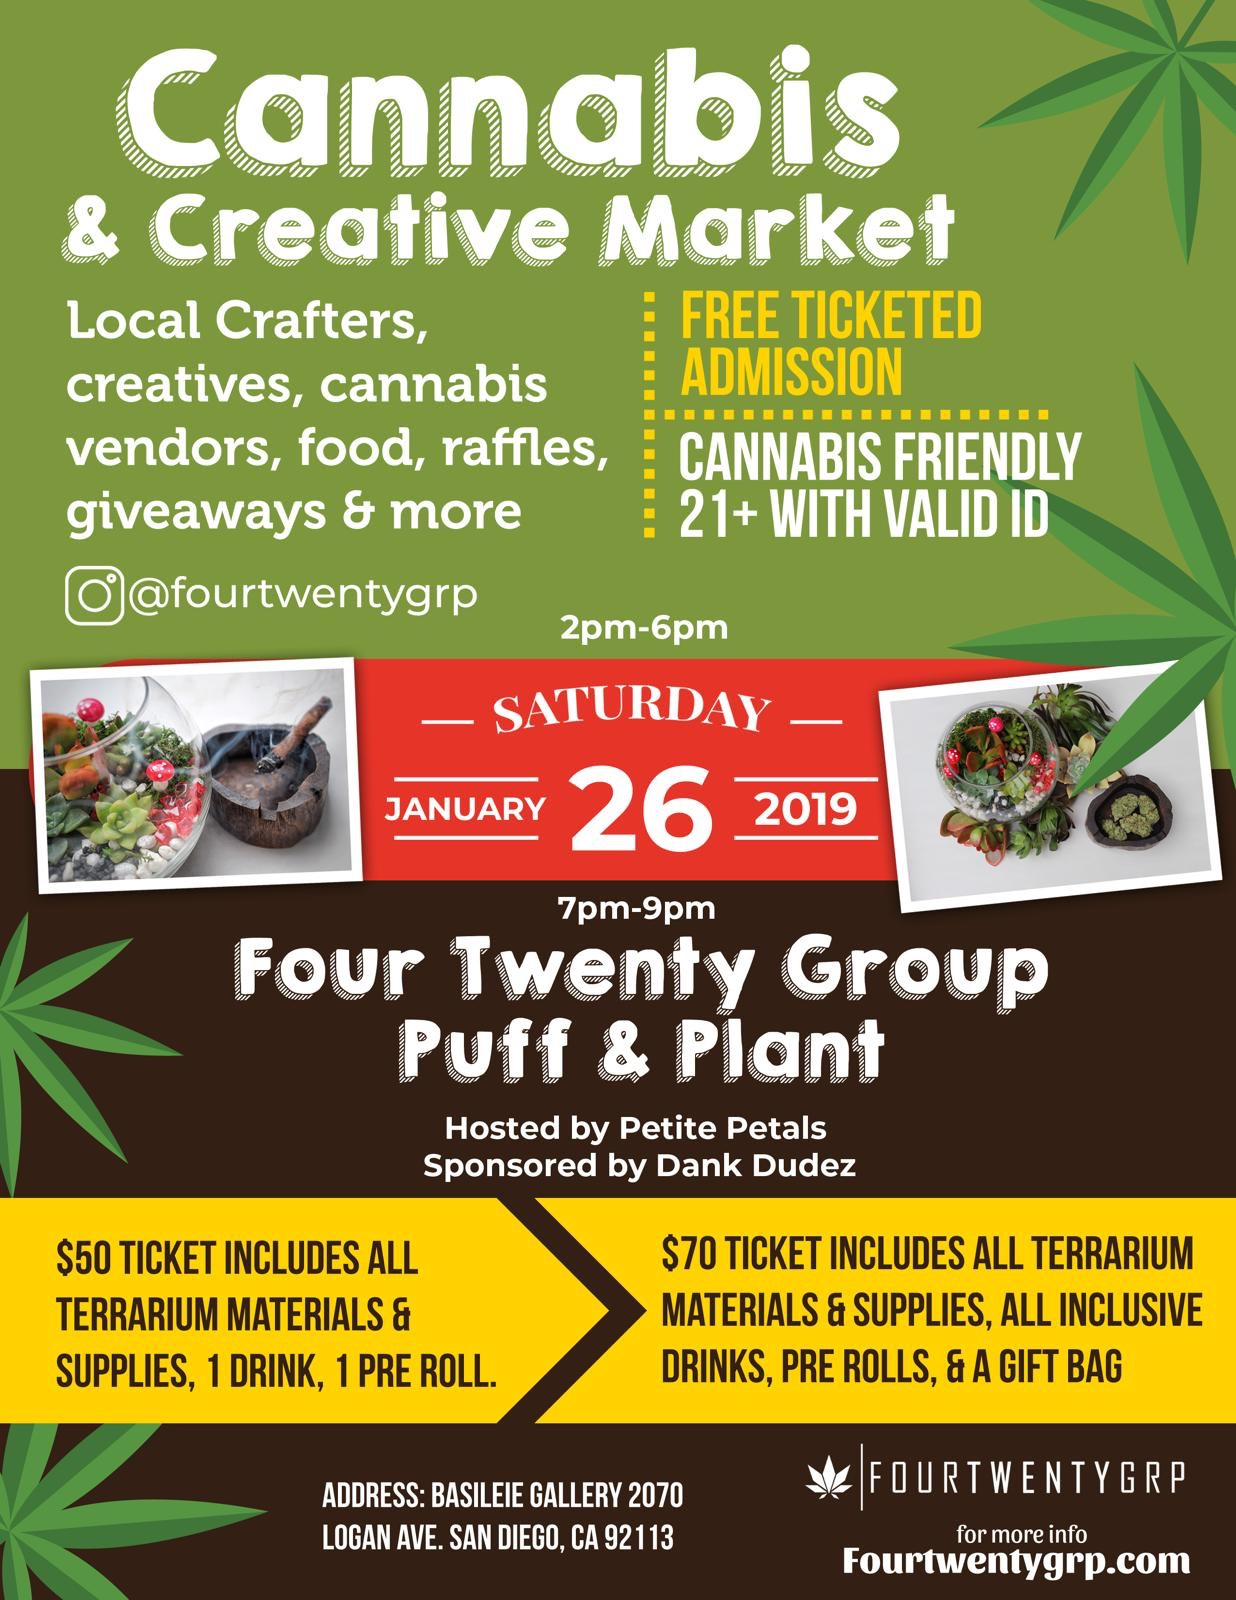 Cannabis & Creatives Market